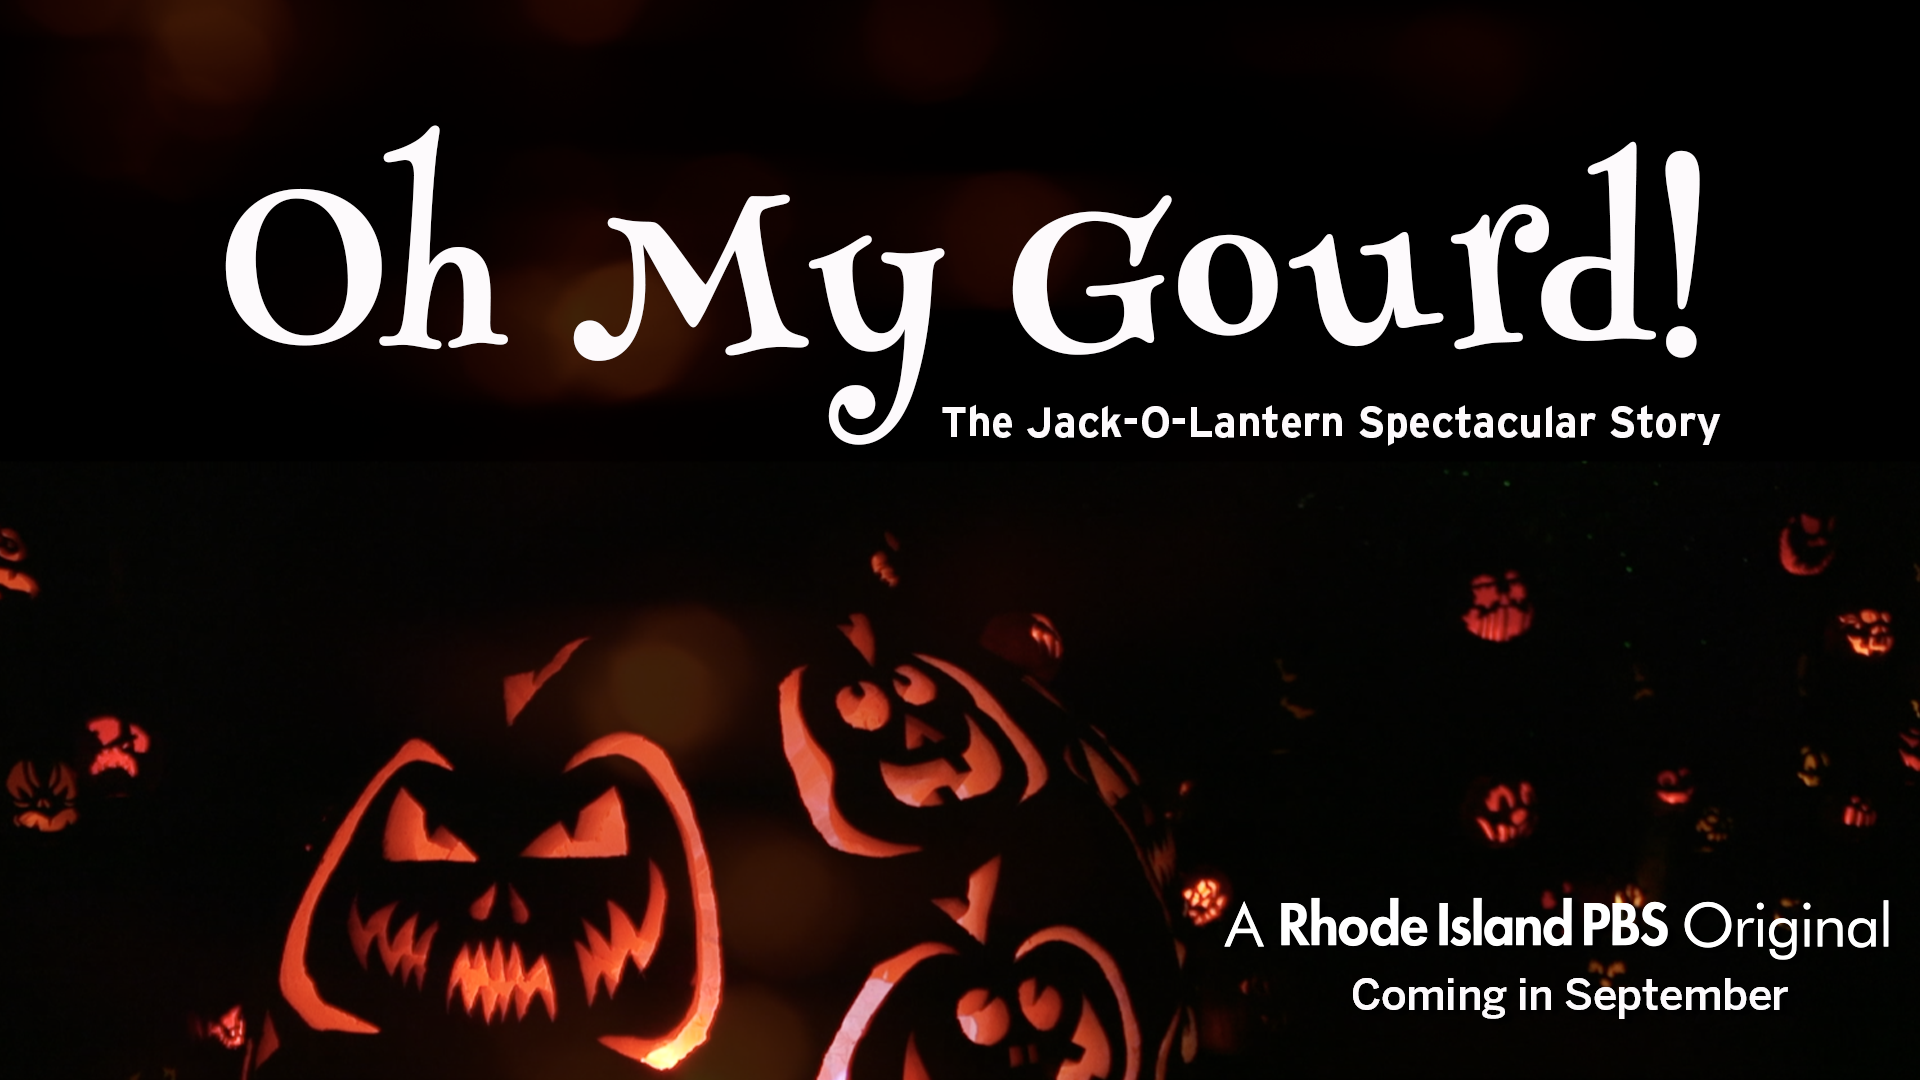 Oh My Gourd! The Jack-O-Lantern Spectacular Story